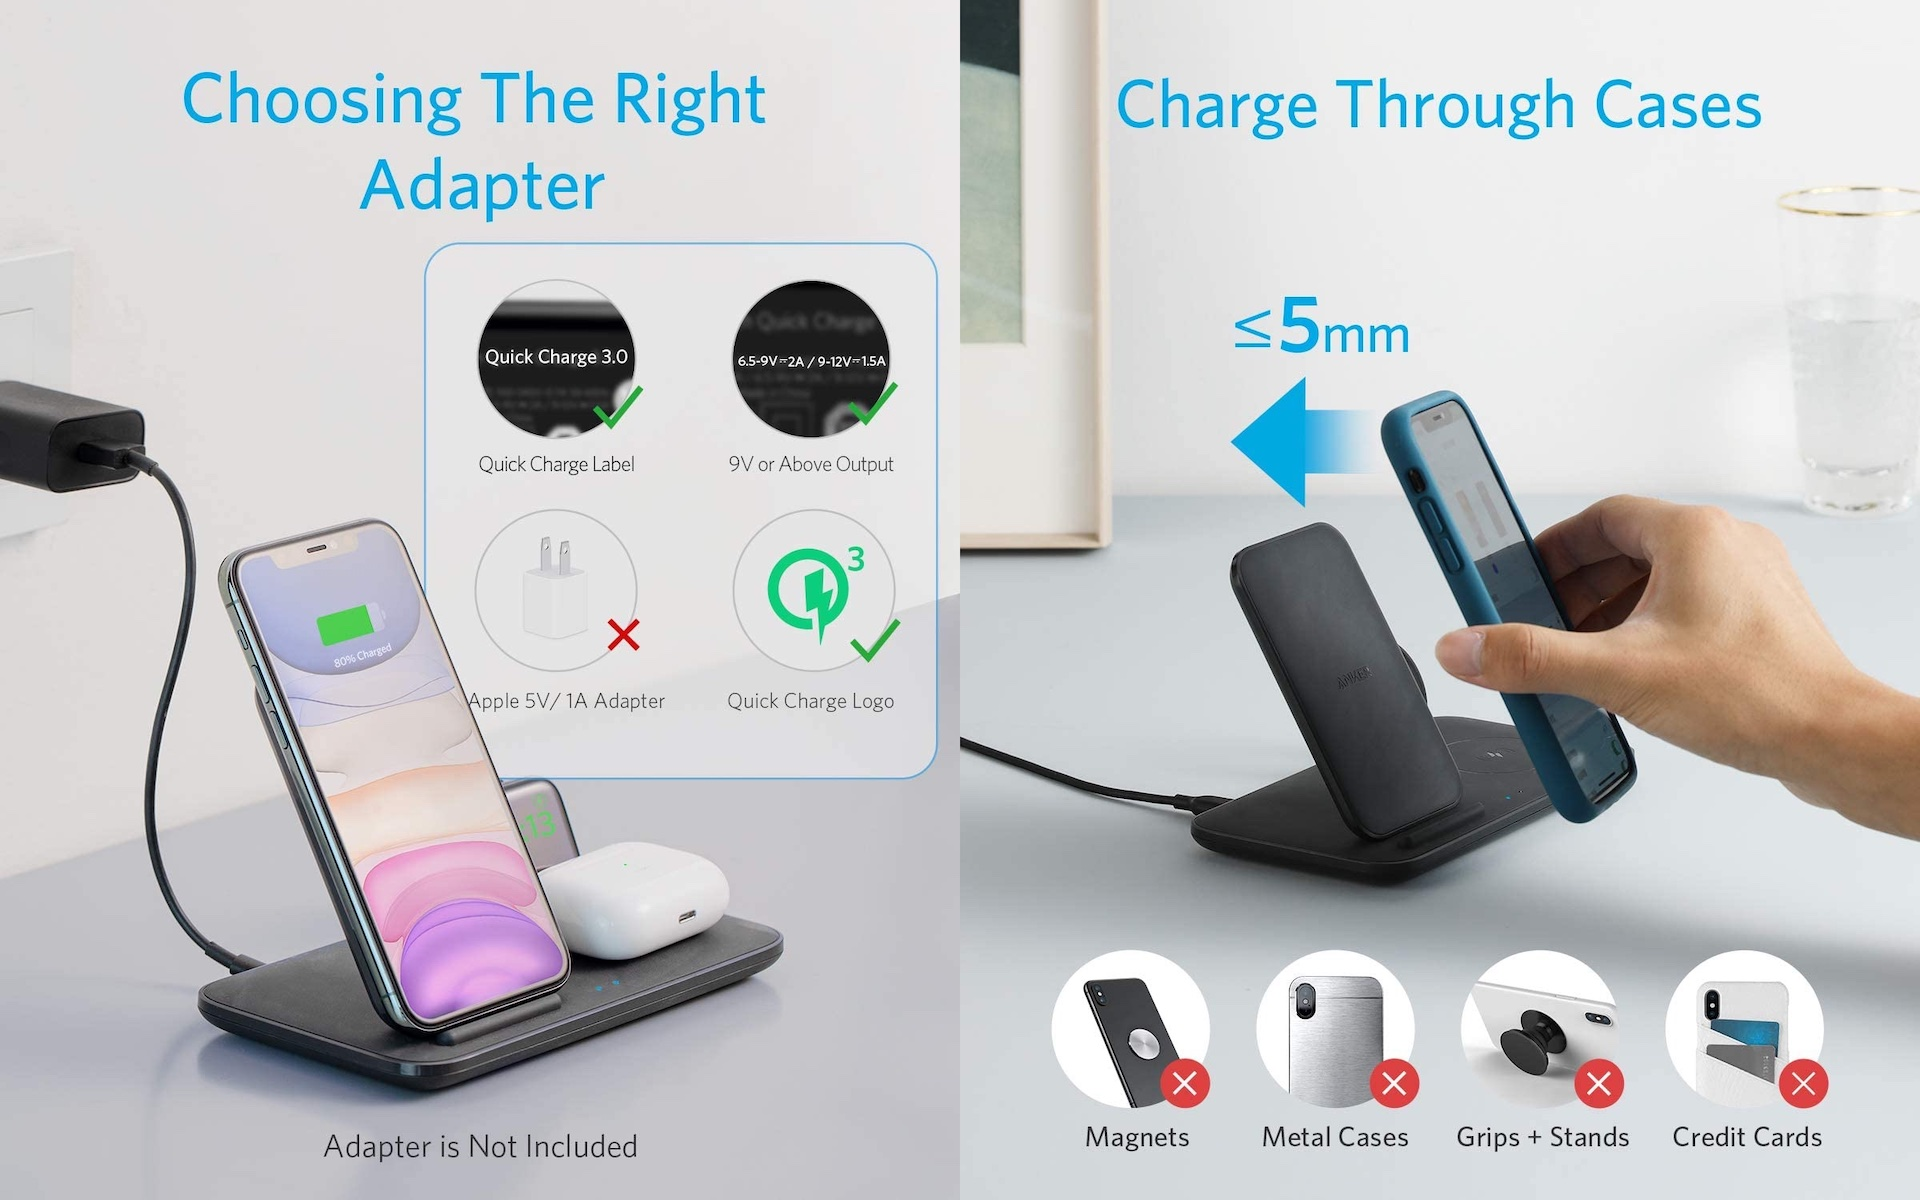 Quick Charge 2.0/3.0